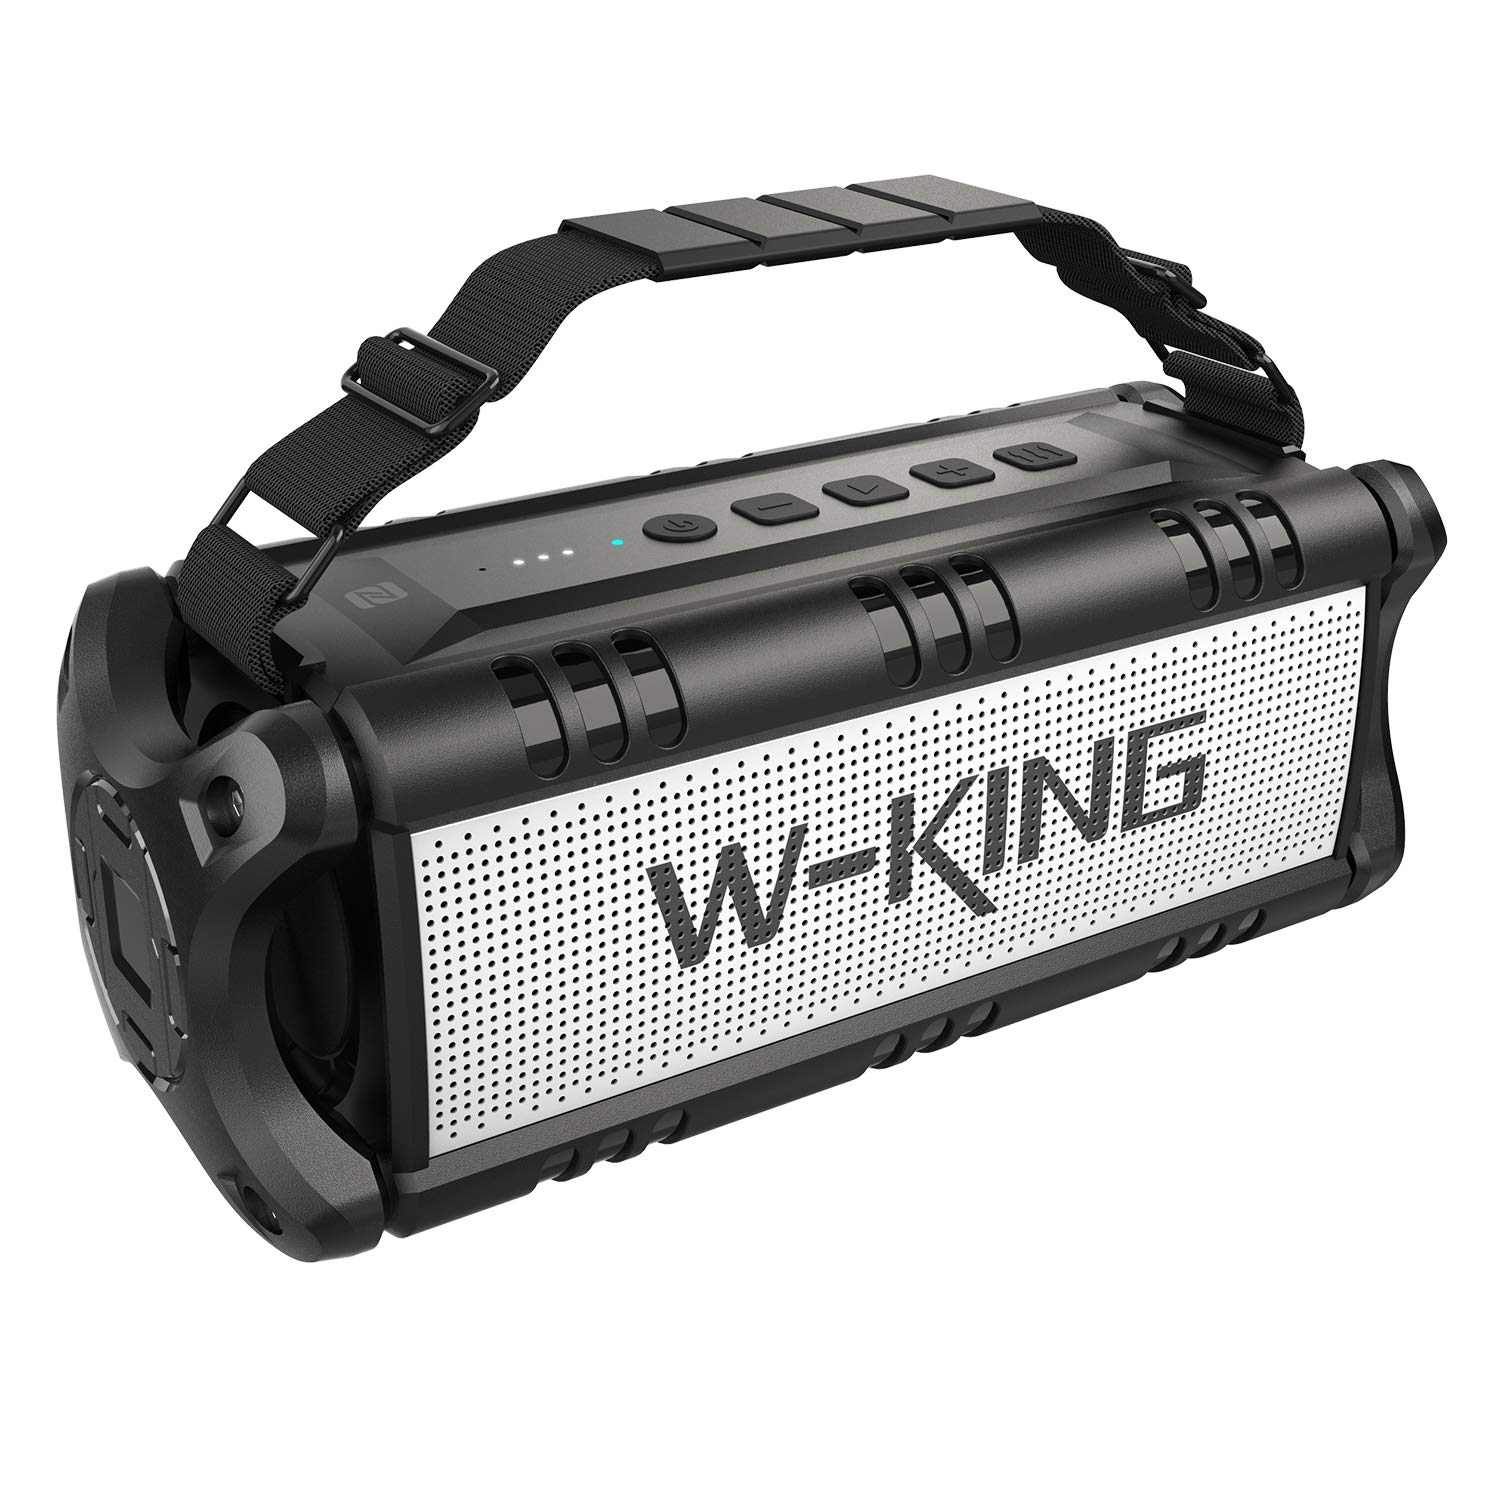 W-KING 50W Wireless Bluetooth Speakers & 8000mAh Battery Power Bank - Outdoor Portable Waterproof TWS Speaker, Powerful Rich Bass Loud Clear Stereo Sound for Parties, Indoor & Outdoor (Black) by W-KING